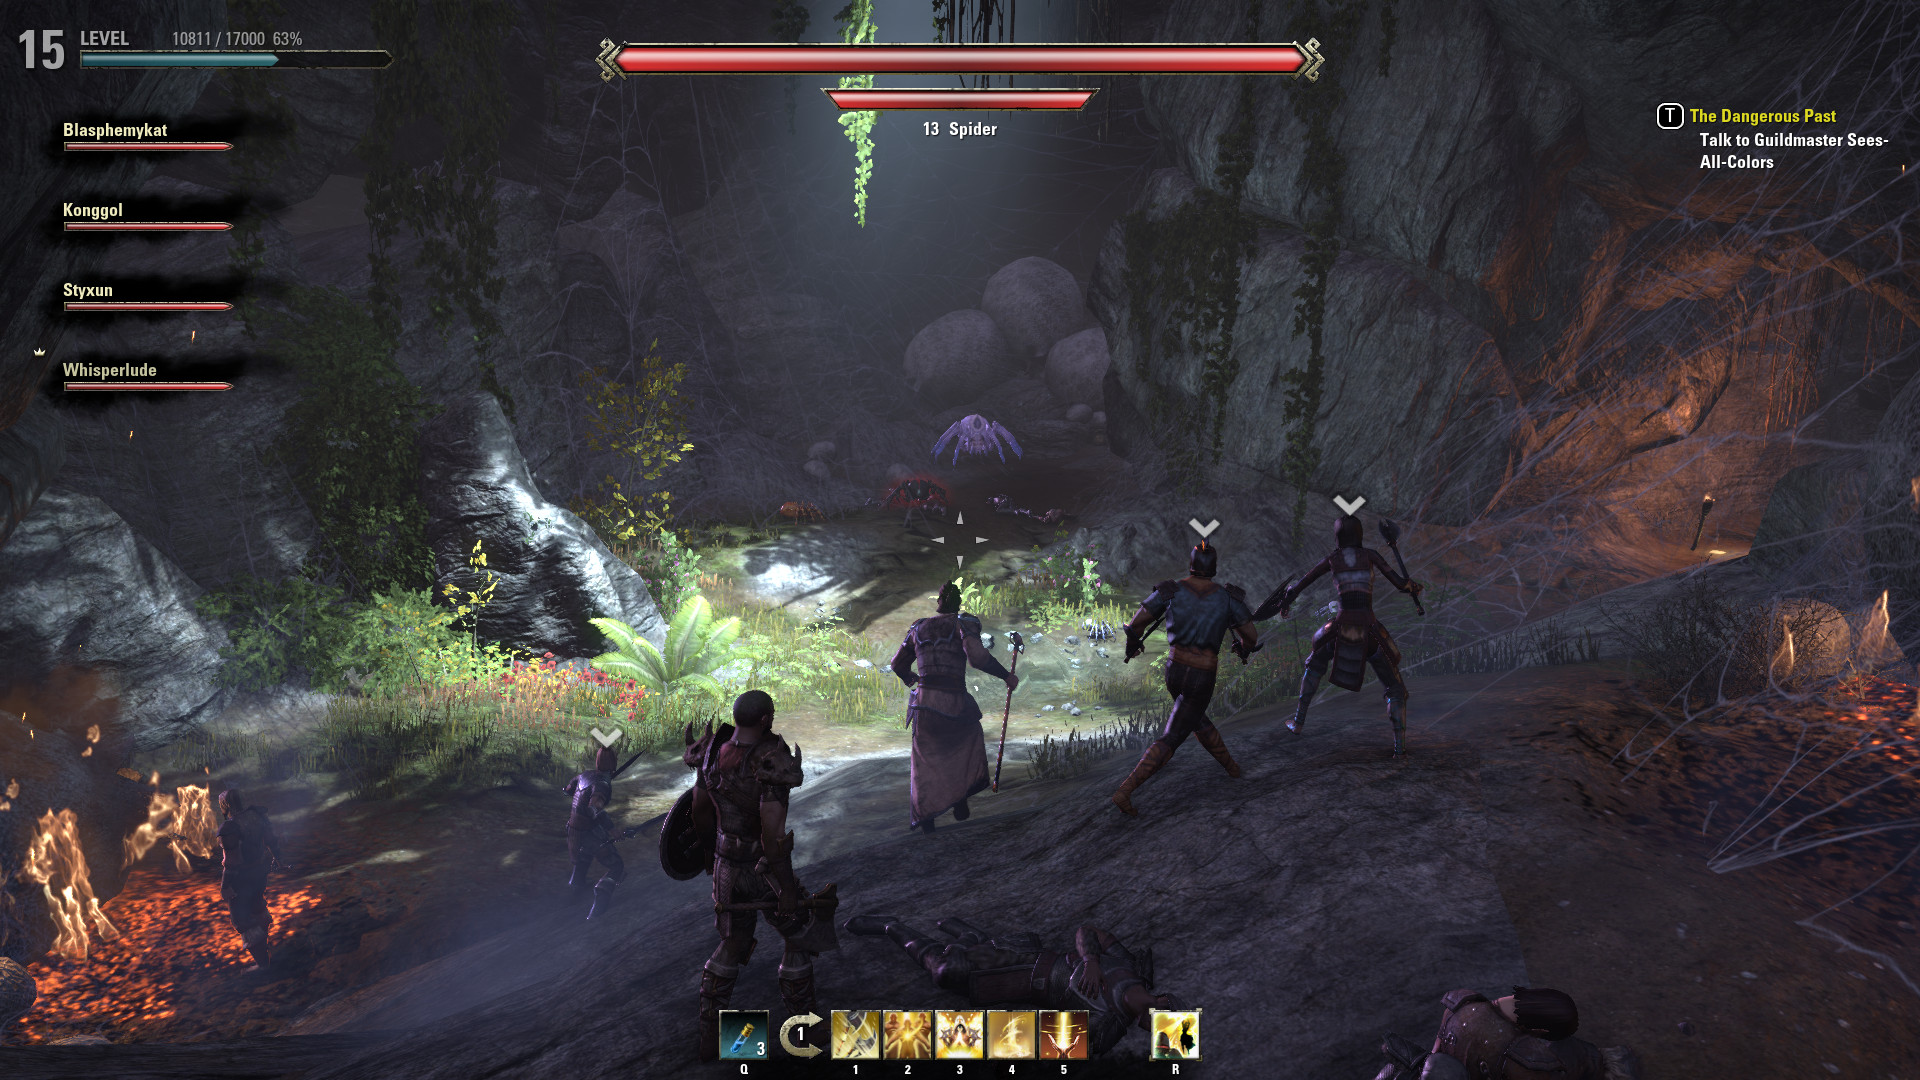 The Elder Scrolls Online The Elder Scrolls Online Guide Spindleclutch Dungeon Overview